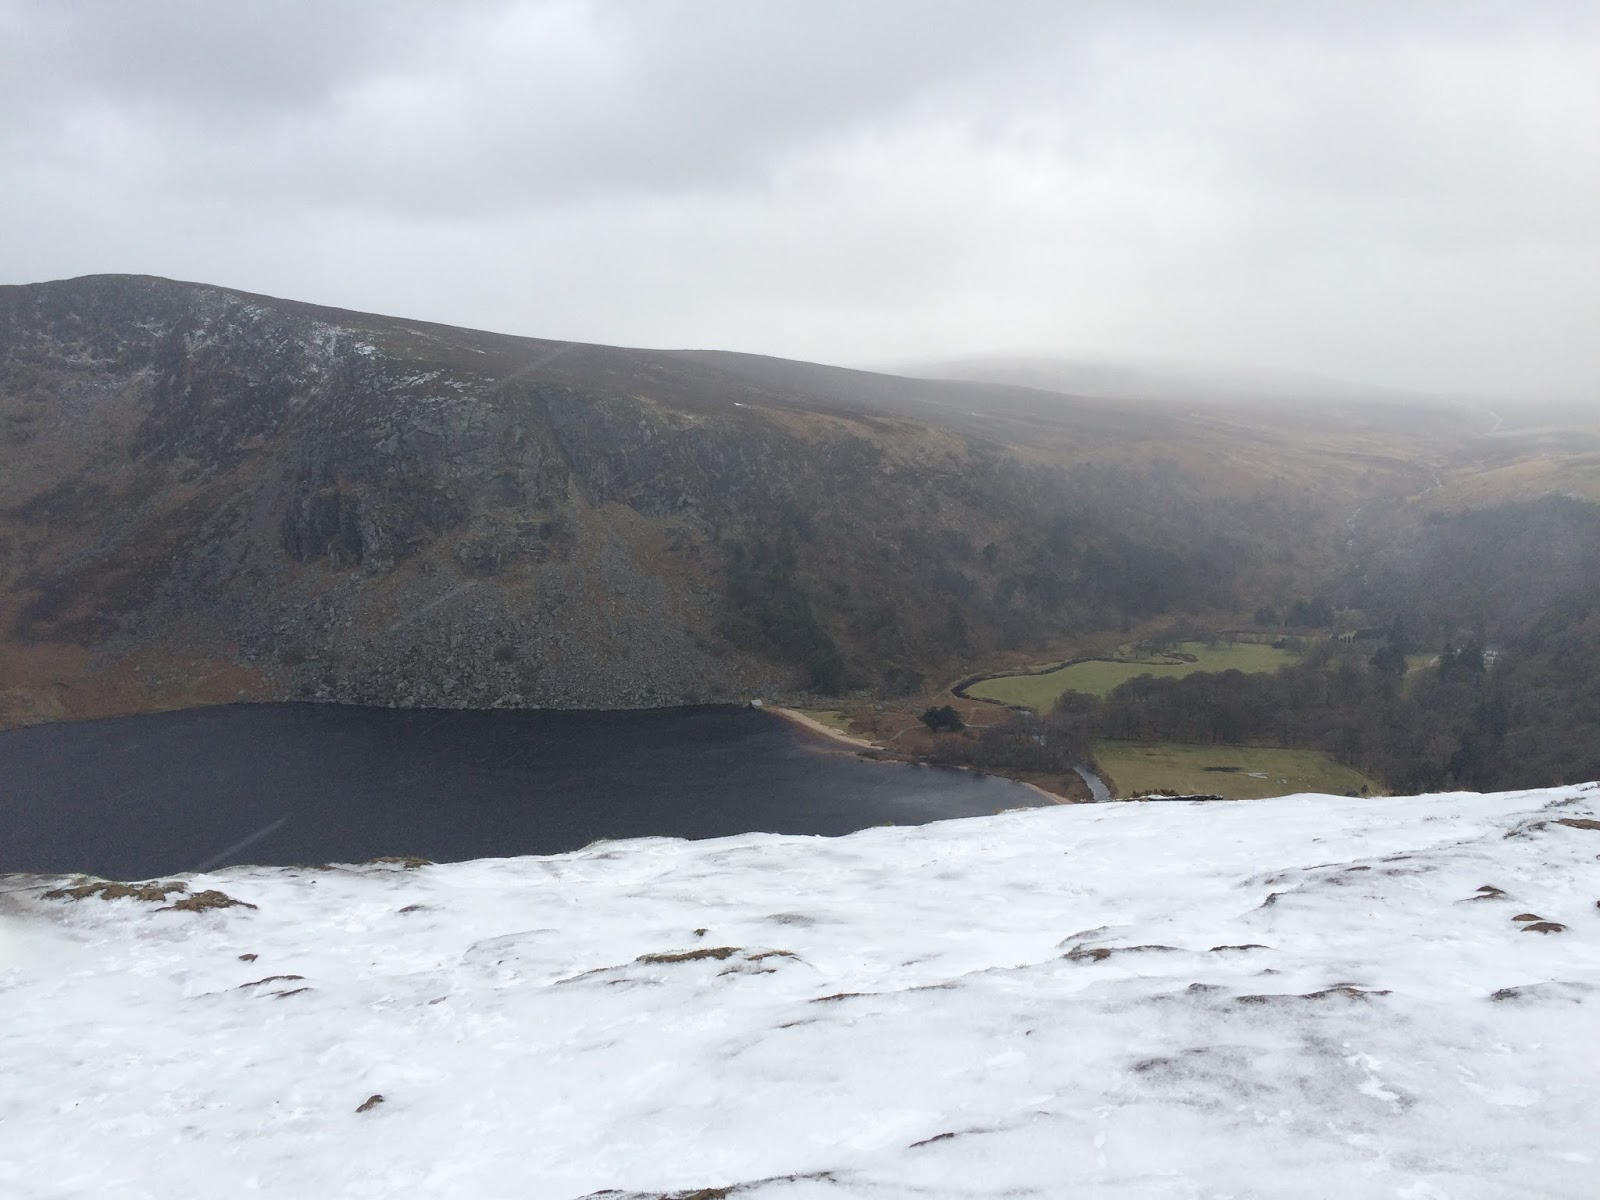 View on Lough Tay, Ireland - old military road